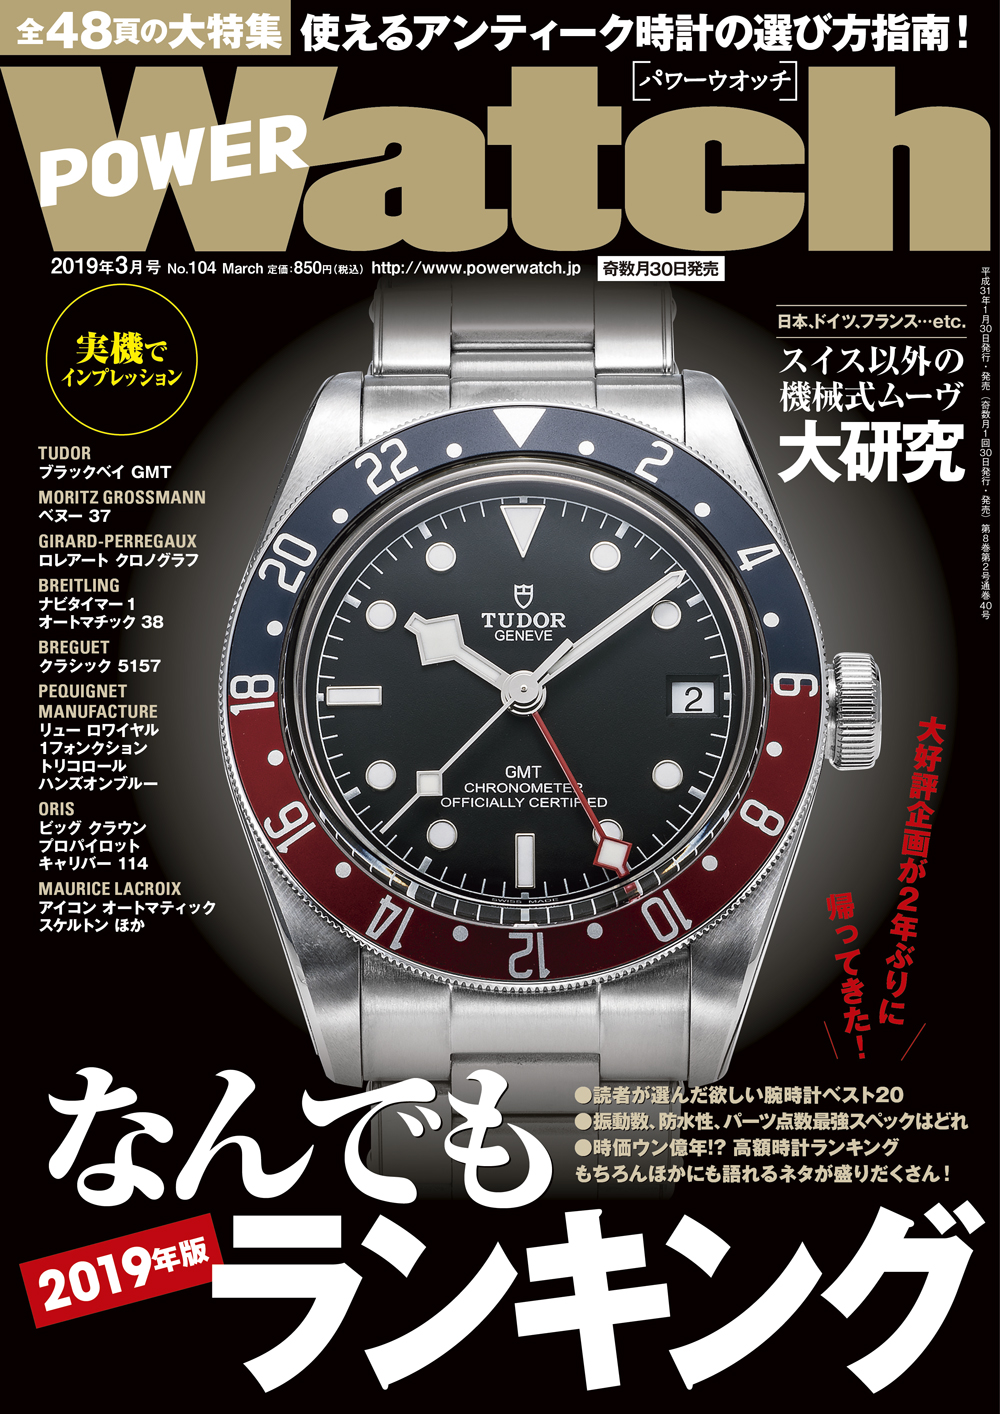 C's-Factory|電子書籍|POWER Watch No.104